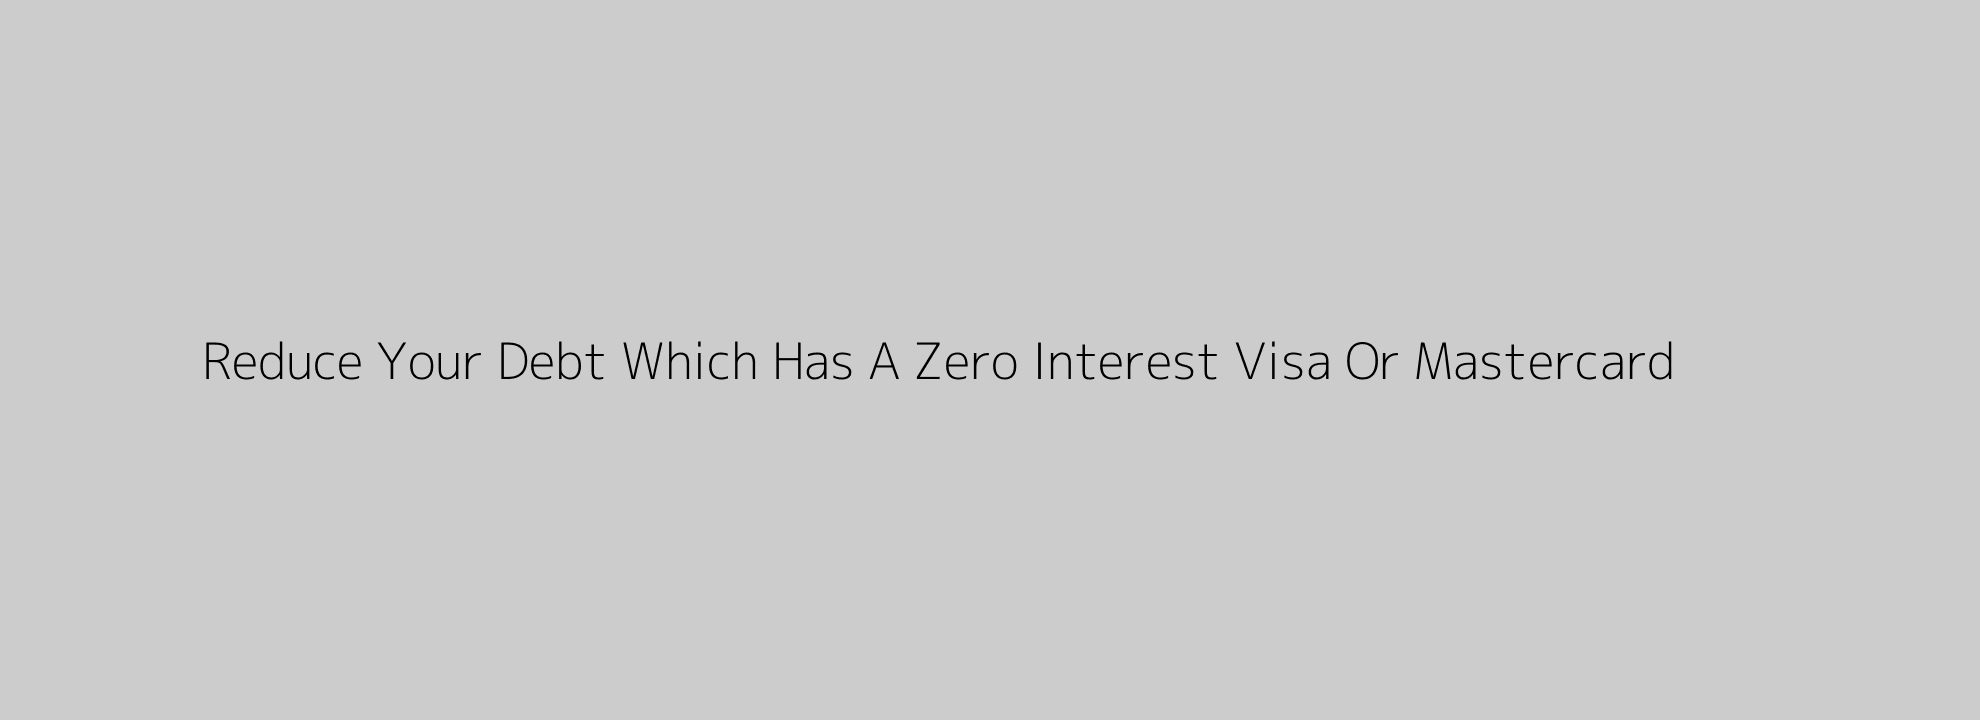 Reduce Your Debt Which Has A Zero Interest Visa Or Mastercard